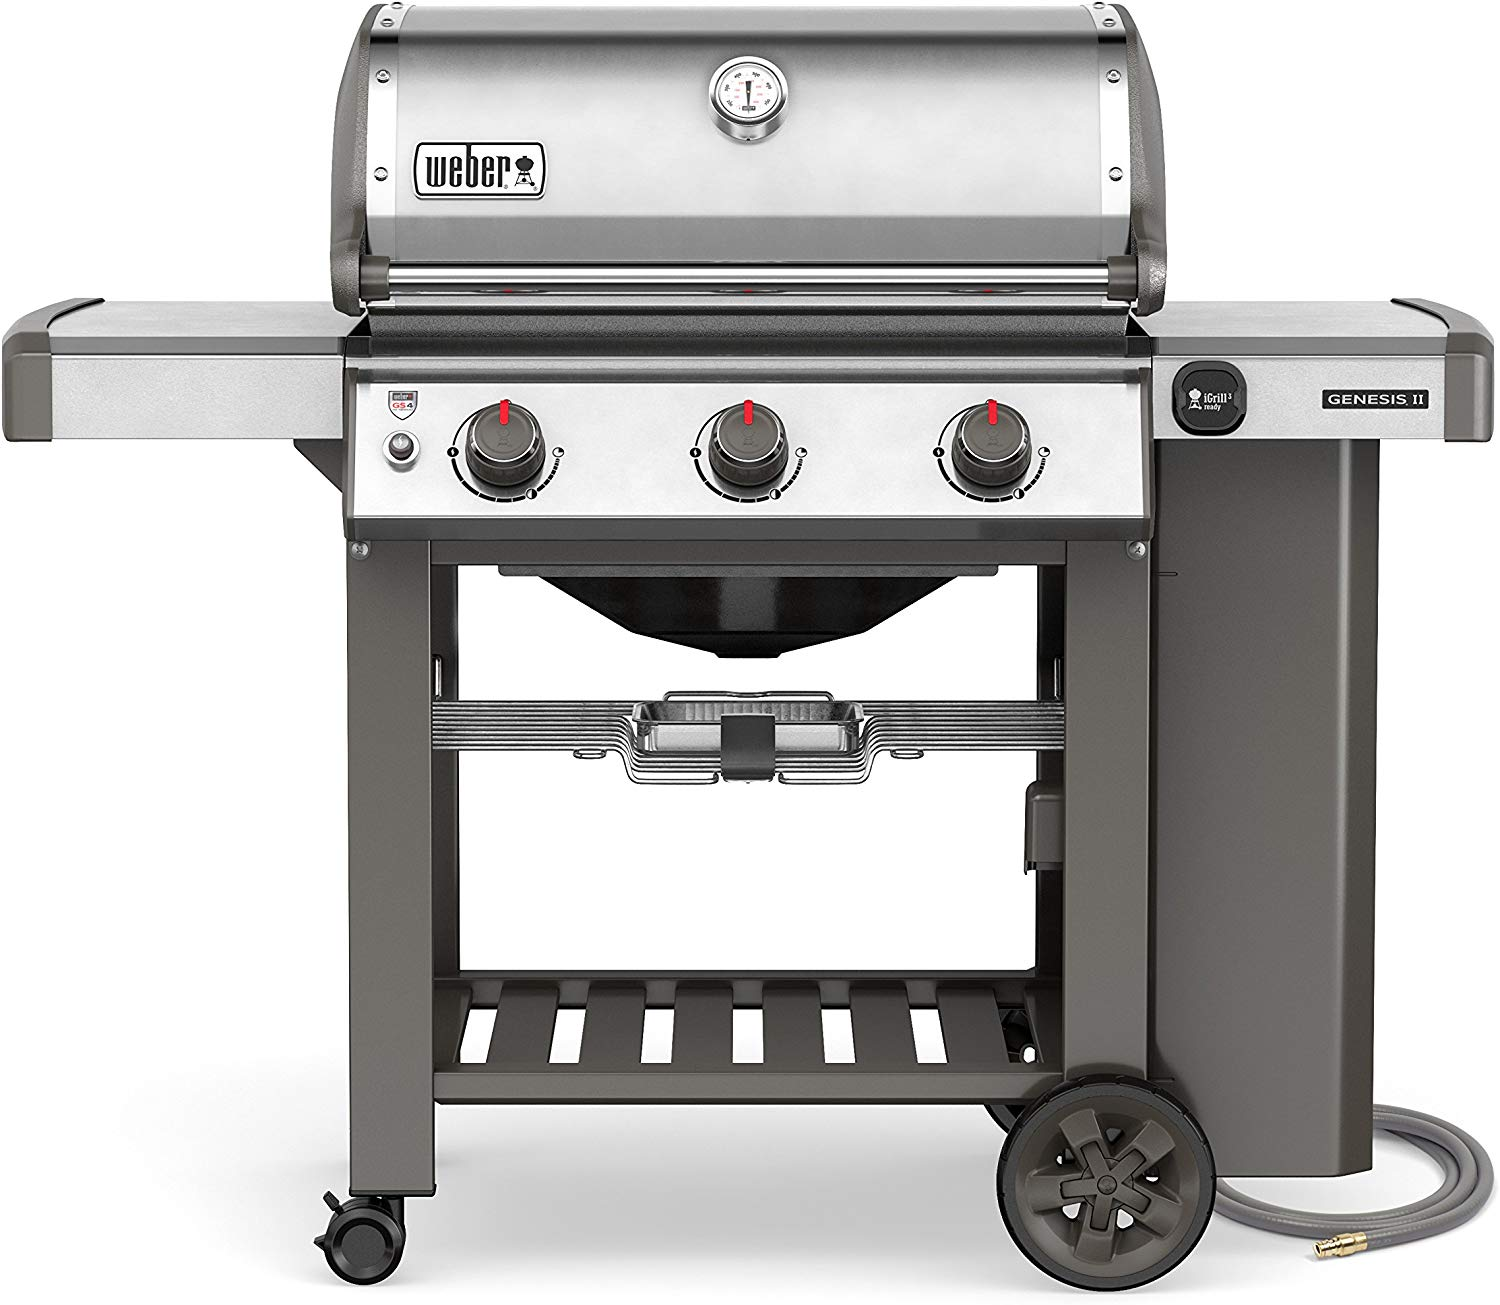 Weber genesis ii s-310 natural gas